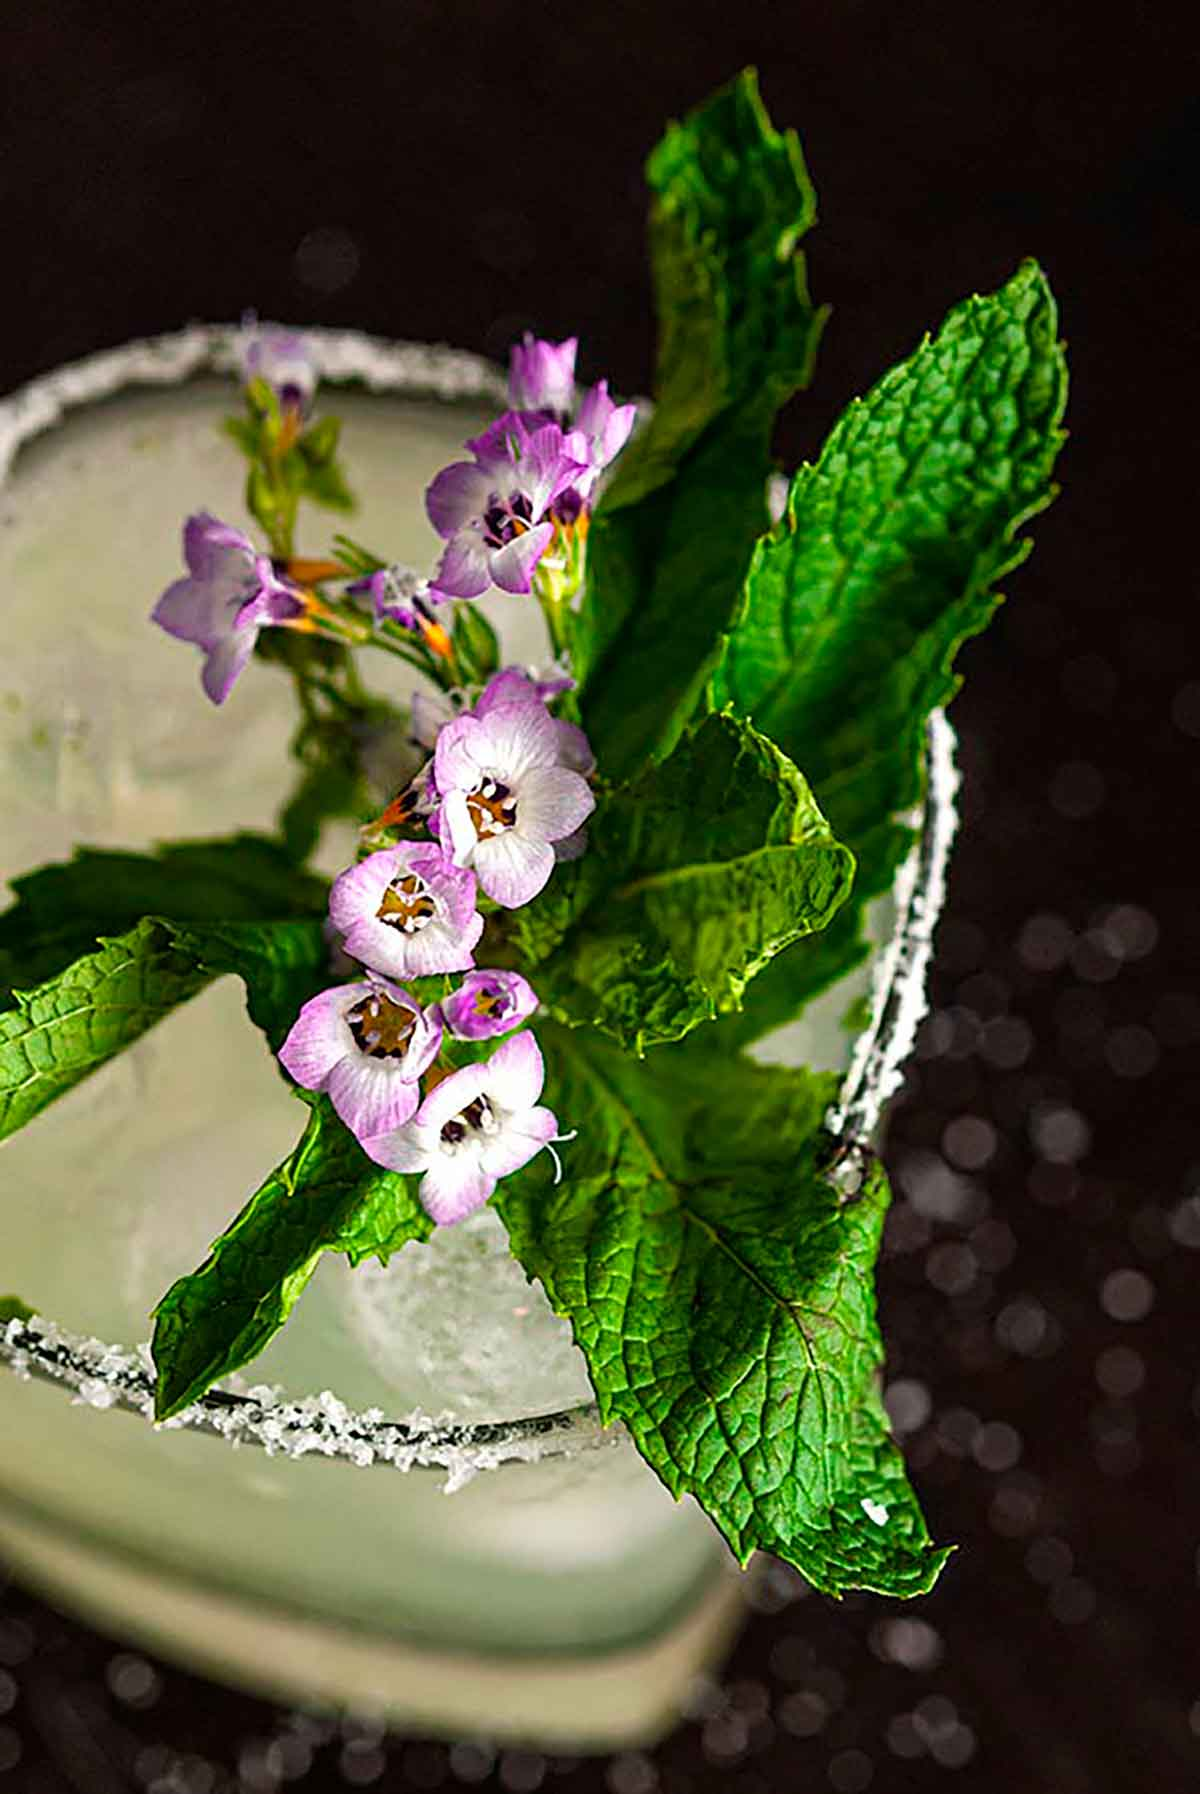 A closeup of a mint and flower garnish on a salted-rim margarita cocktail.